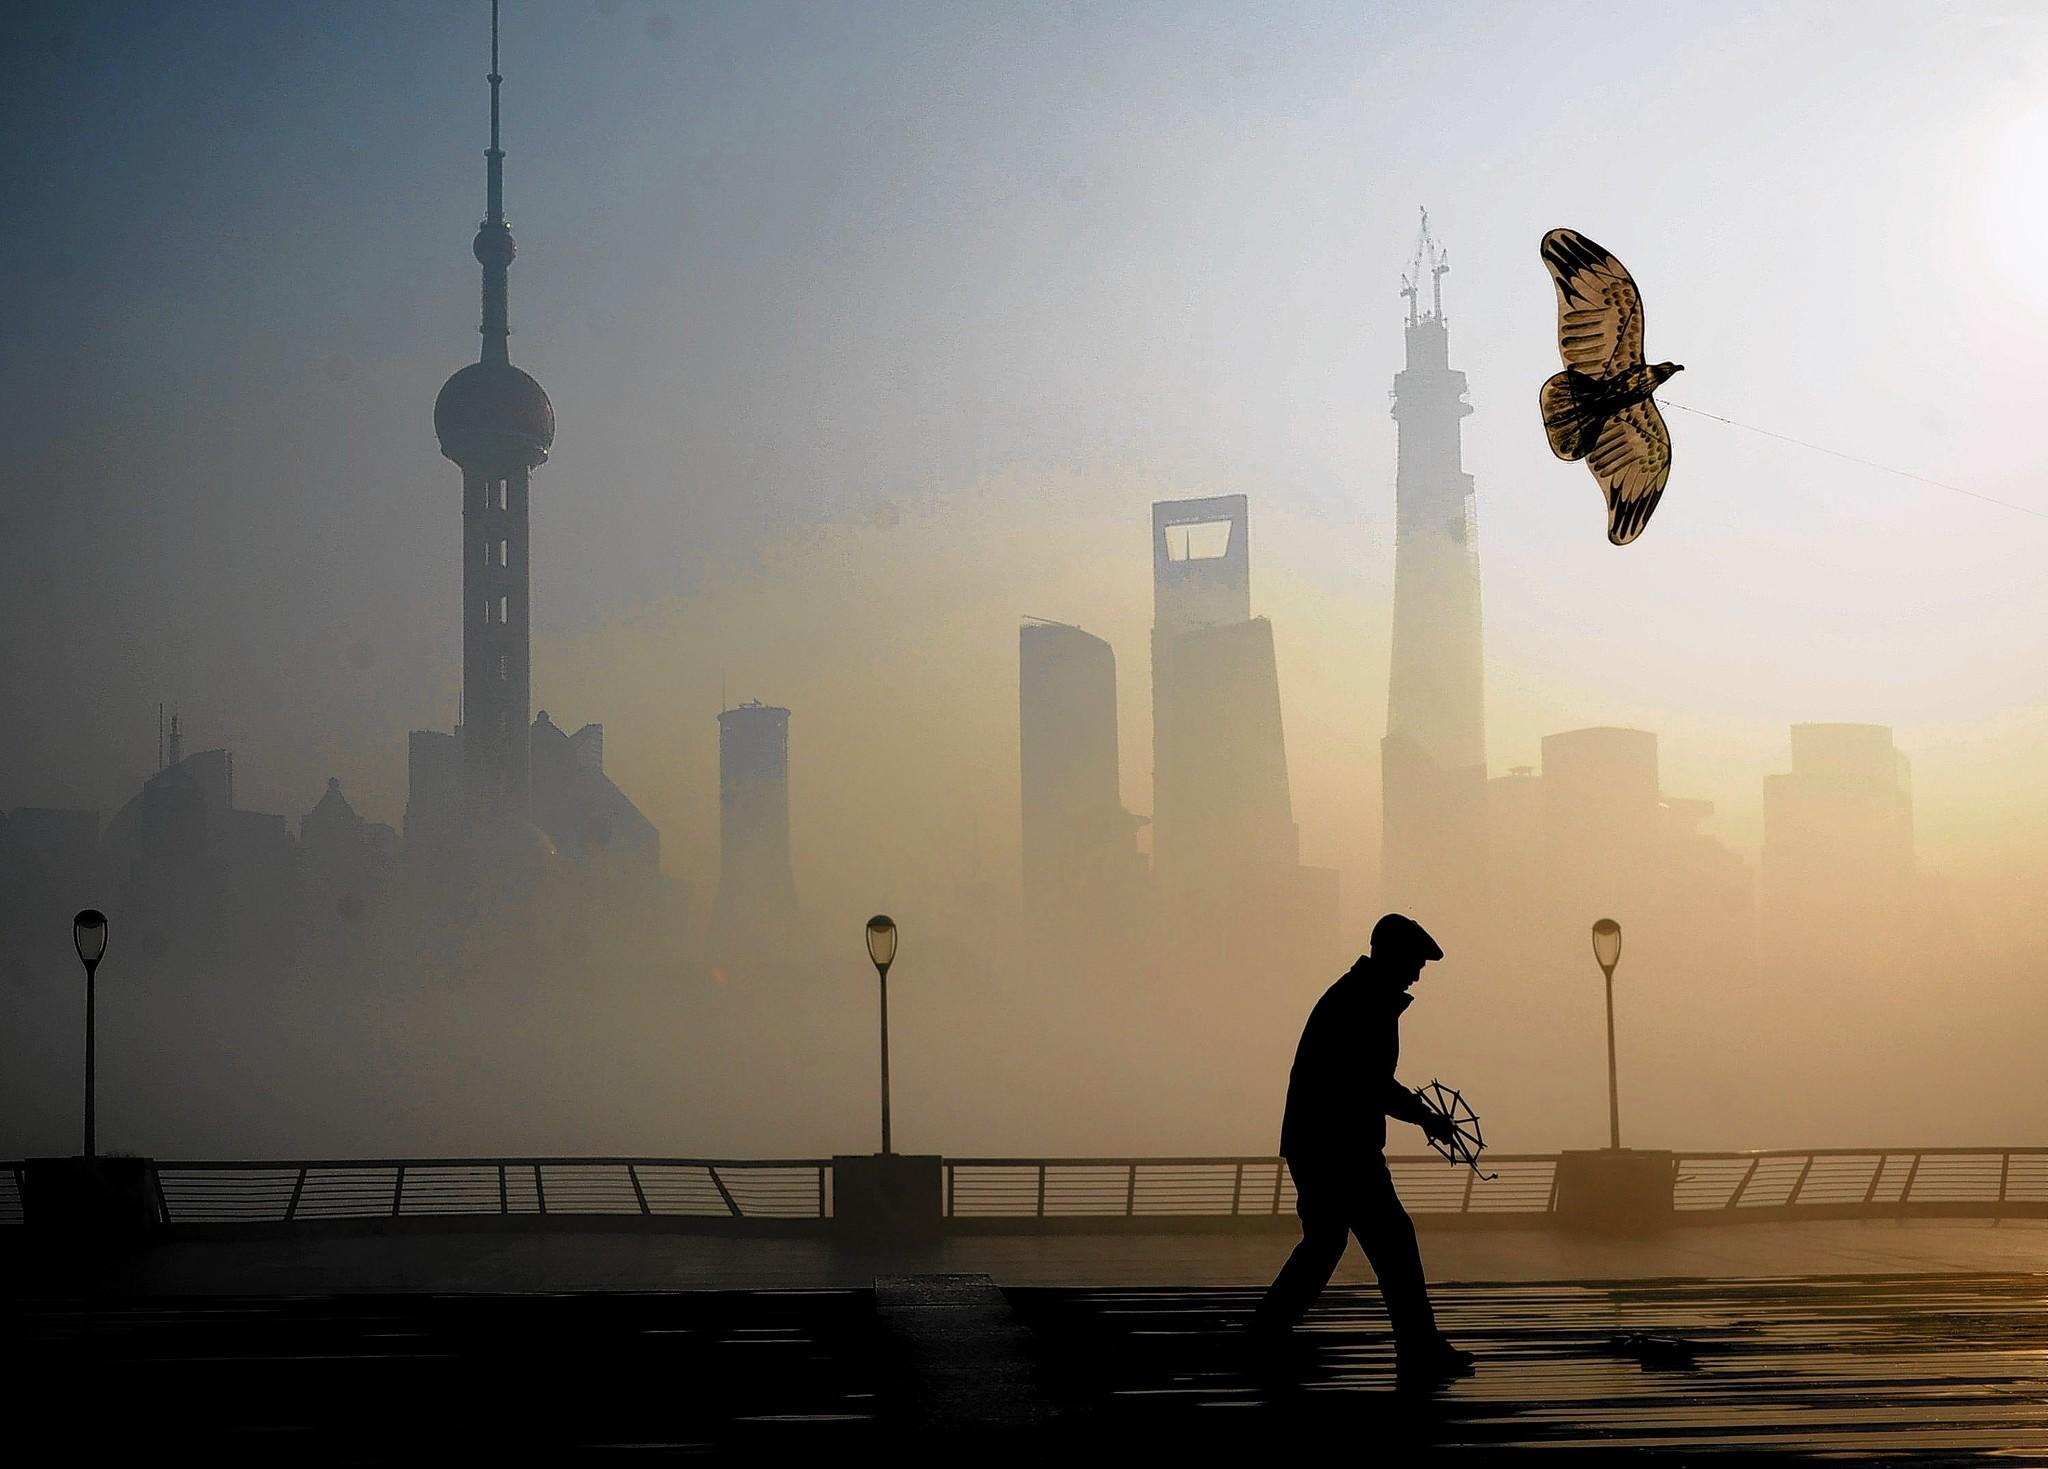 A man flies a kite in Shanghai. This month, the city had an air pollution reading of 500 for the first time, prompting authorities to order children and the elderly to remain indoors. Beijing and other parts of northern China have pollution that is even higher.